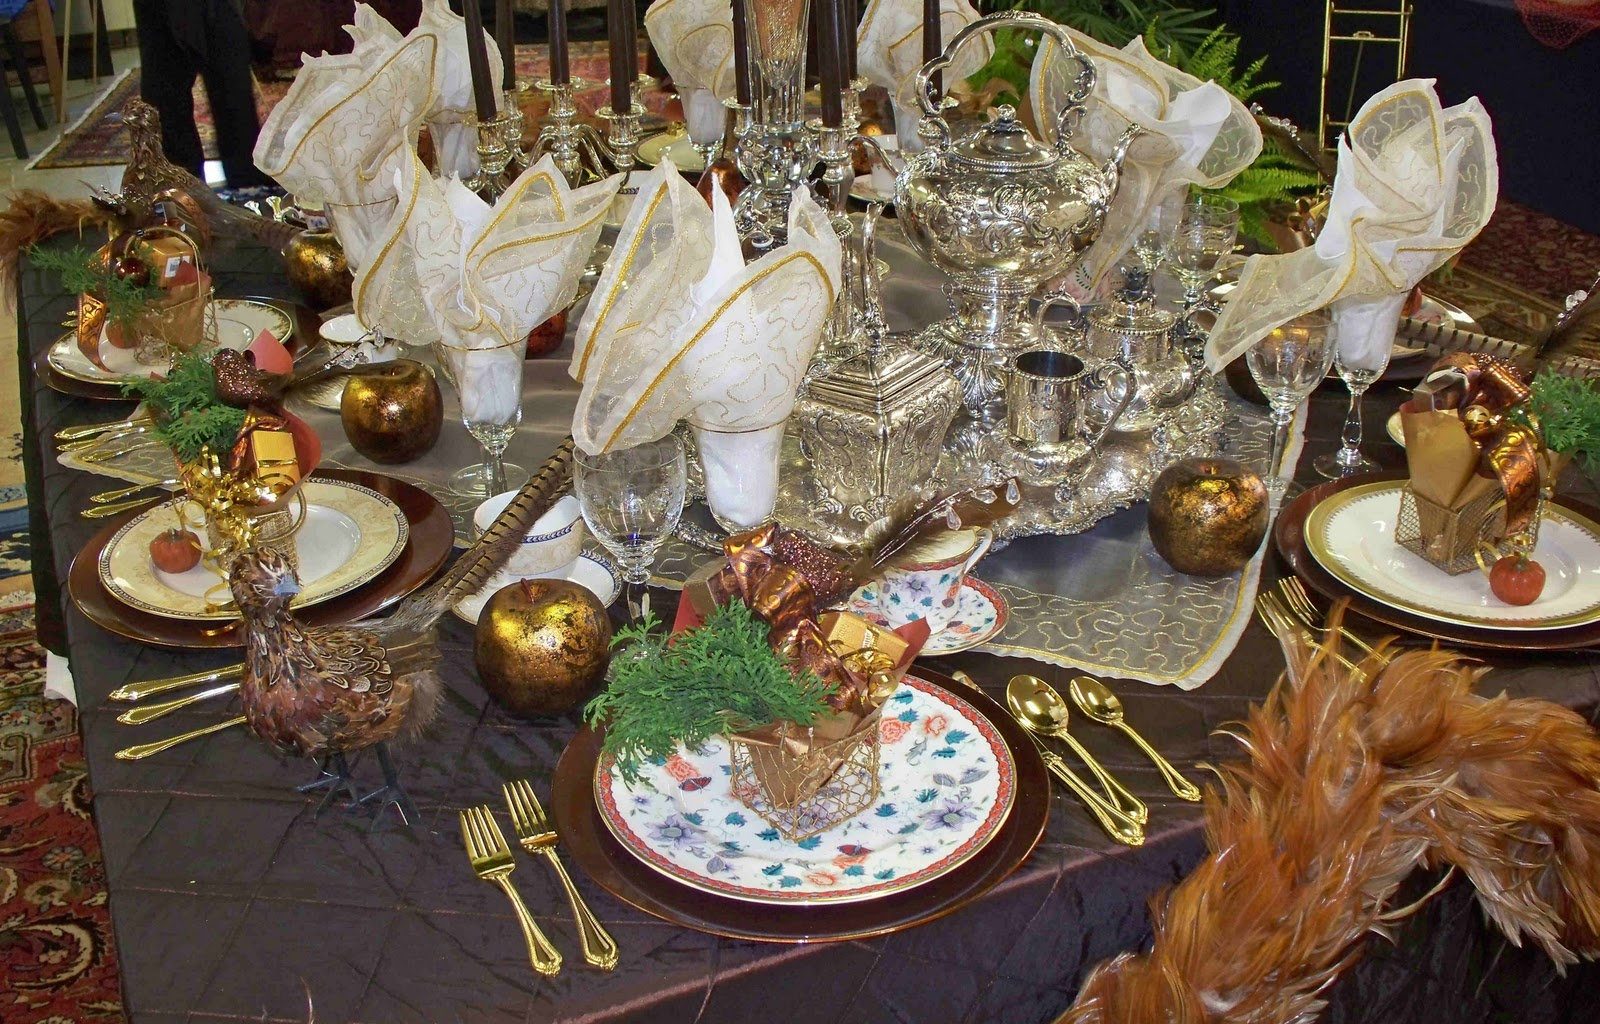 The life of a suburban princess victorian tea party for Edwardian table setting